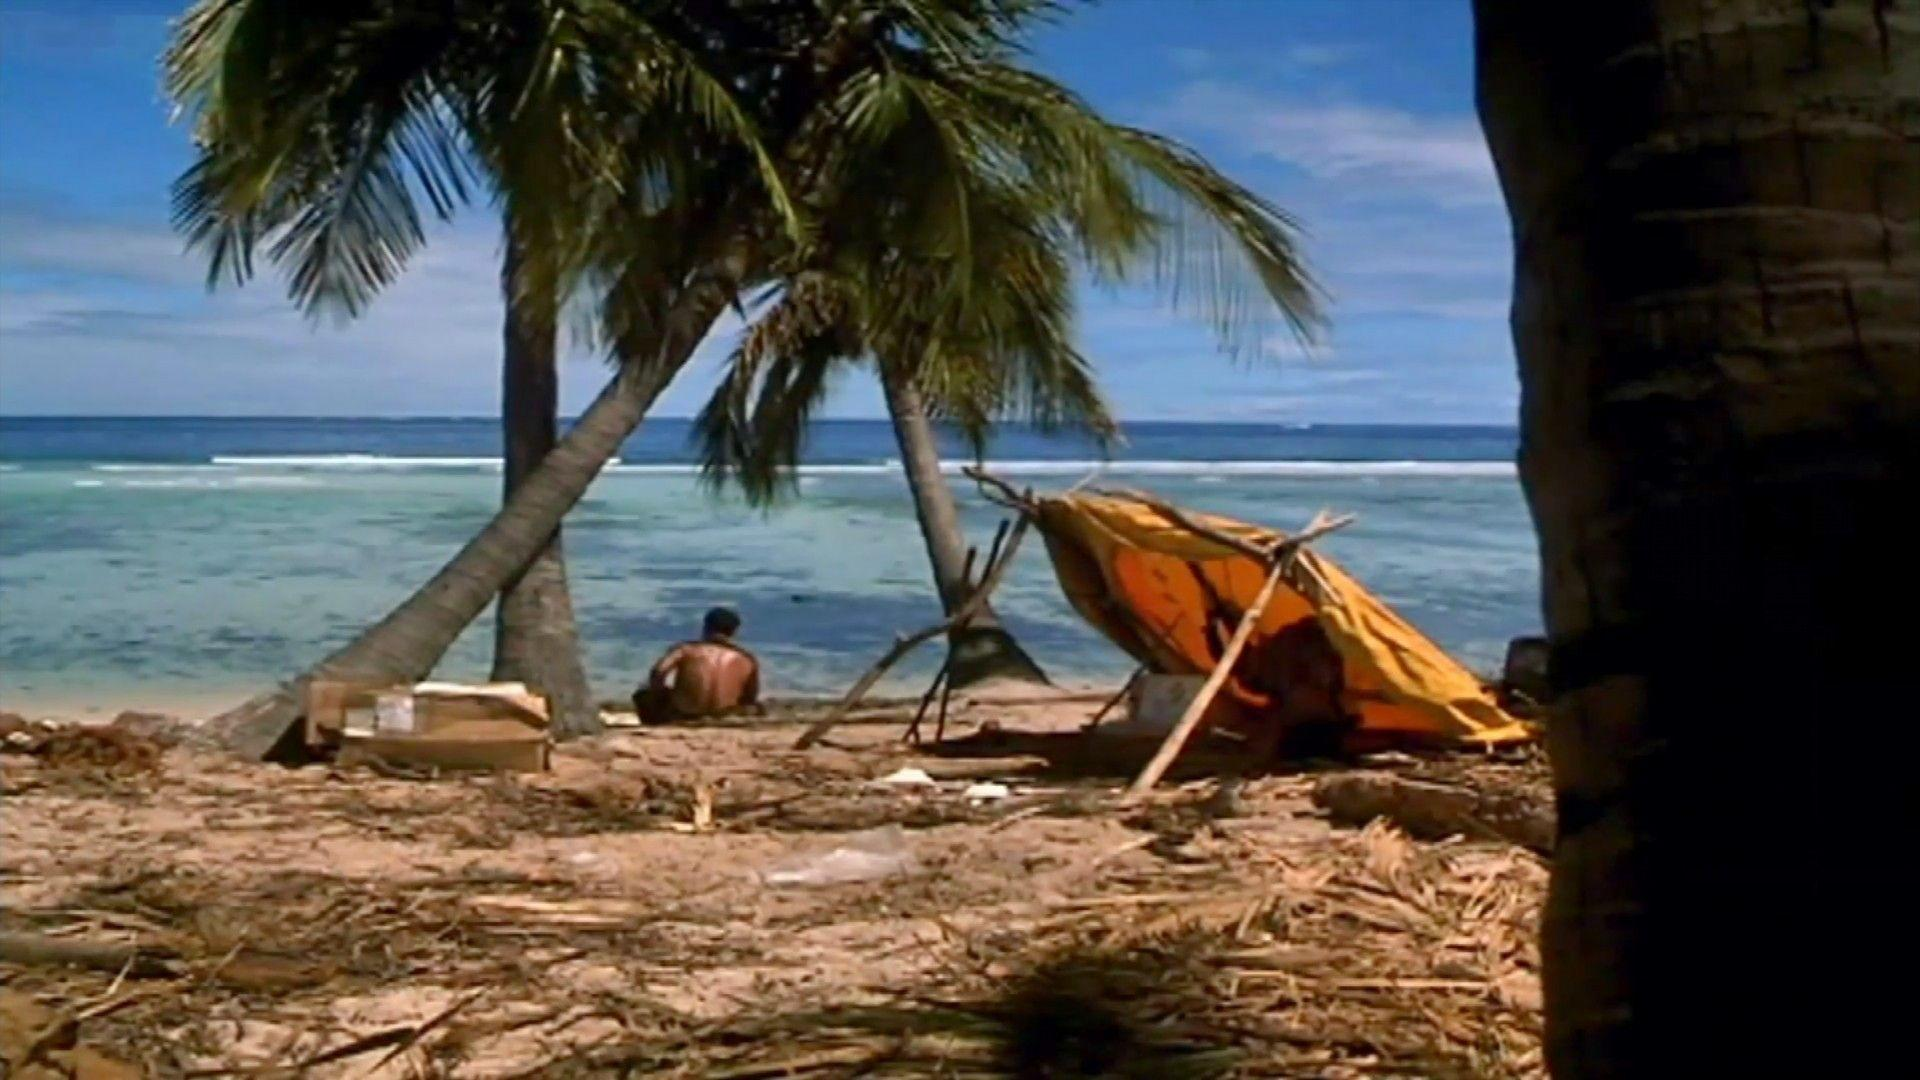 The Crossroads in Life: Thoughts on Cast Away – Through the Eyes of